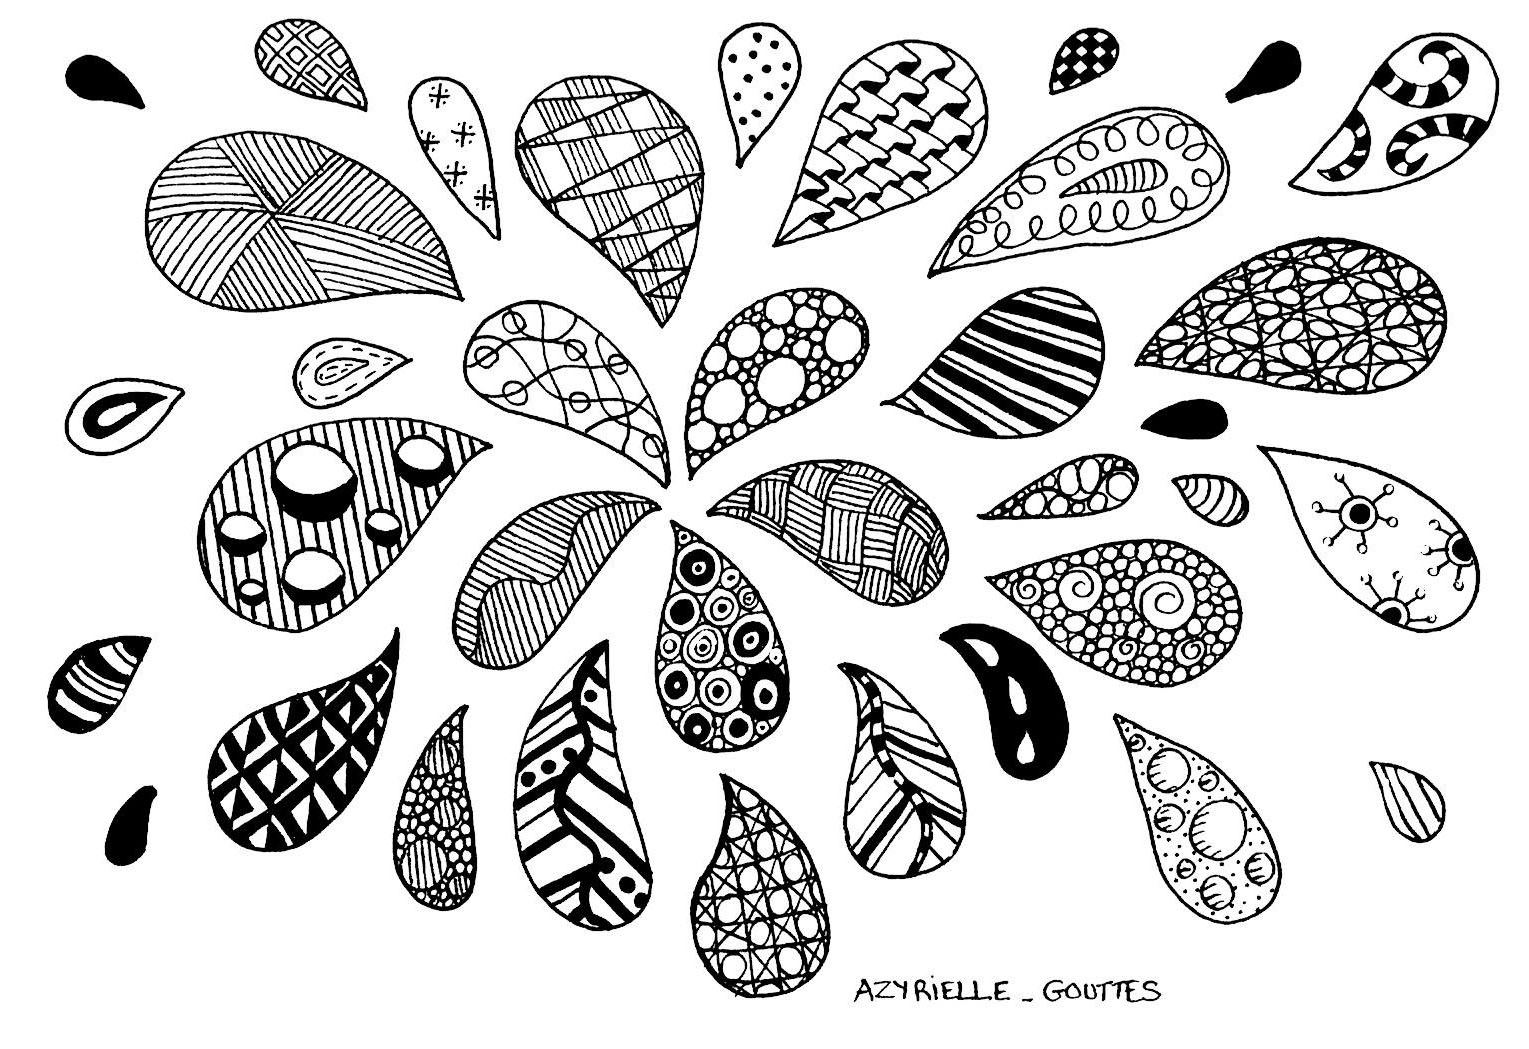 Free printable zentangle coloring pages for adults - Zentangle Drops From The Gallery Zentangle Artist Azyrielle Print